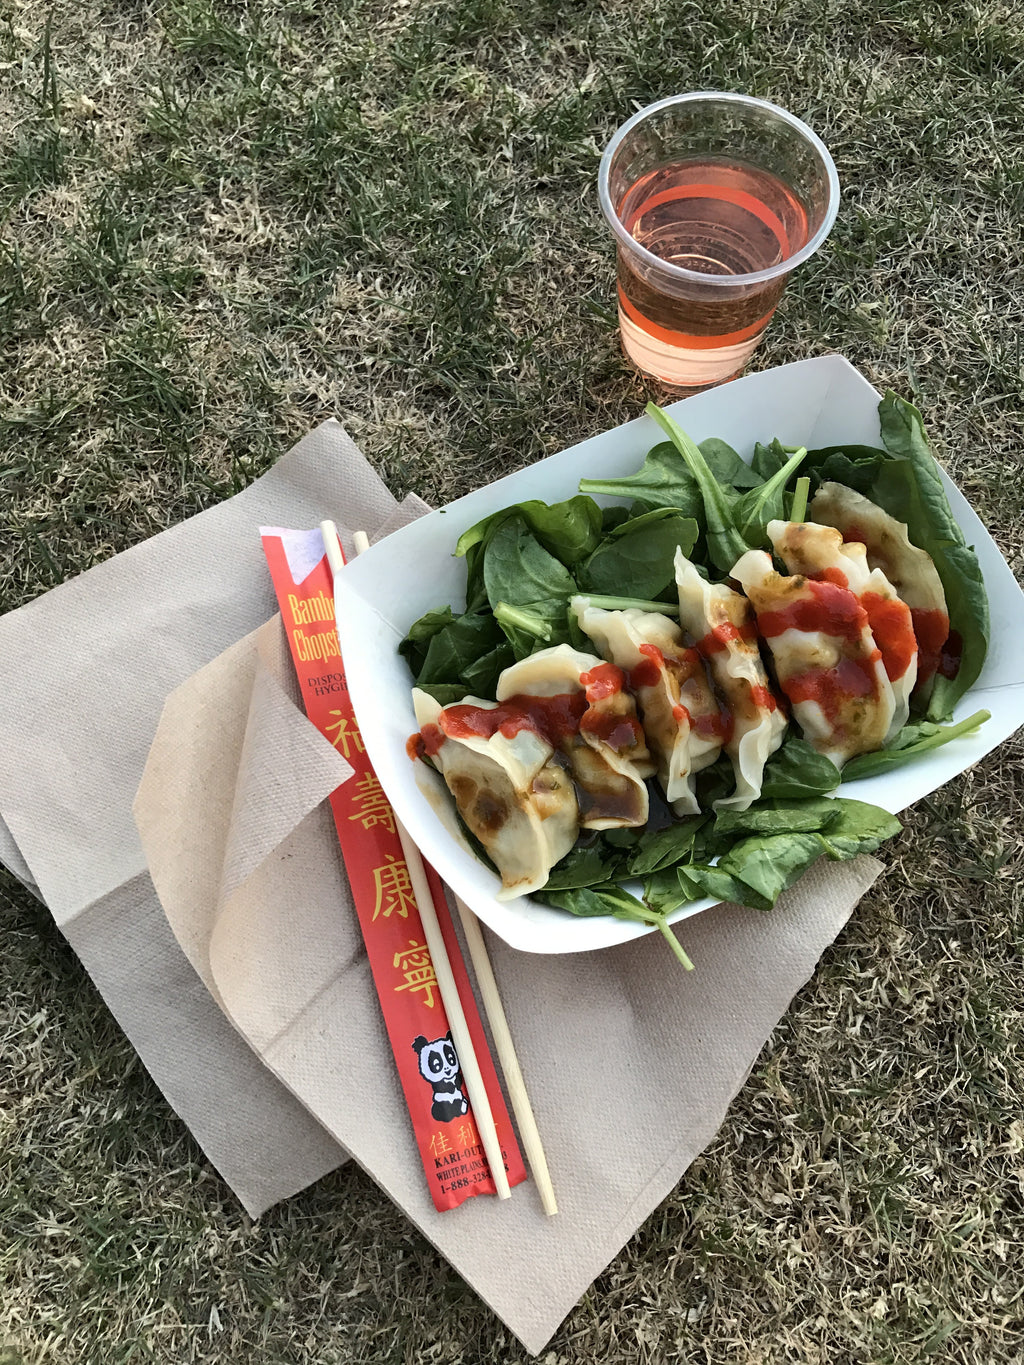 The Best Things to Eat at Coachella: Bling Bling Dumpling